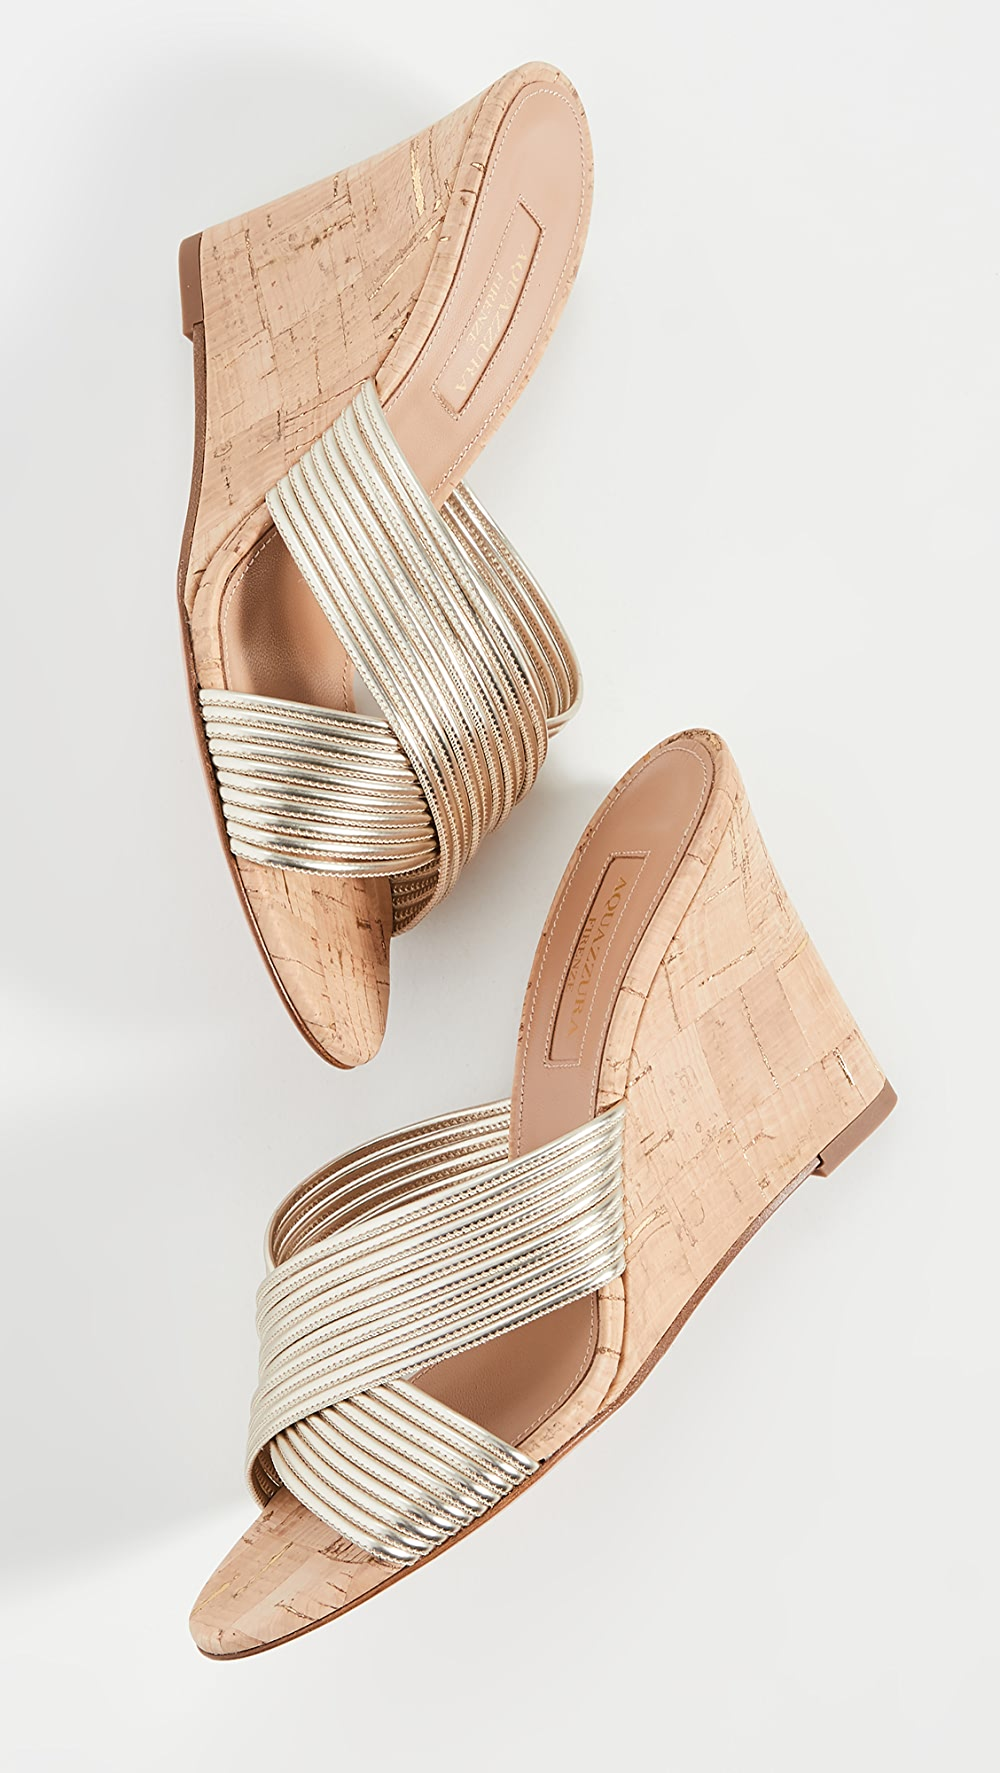 Alert Aquazzura - Perugia Wedge Sandals 85mm To Clear Out Annoyance And Quench Thirst